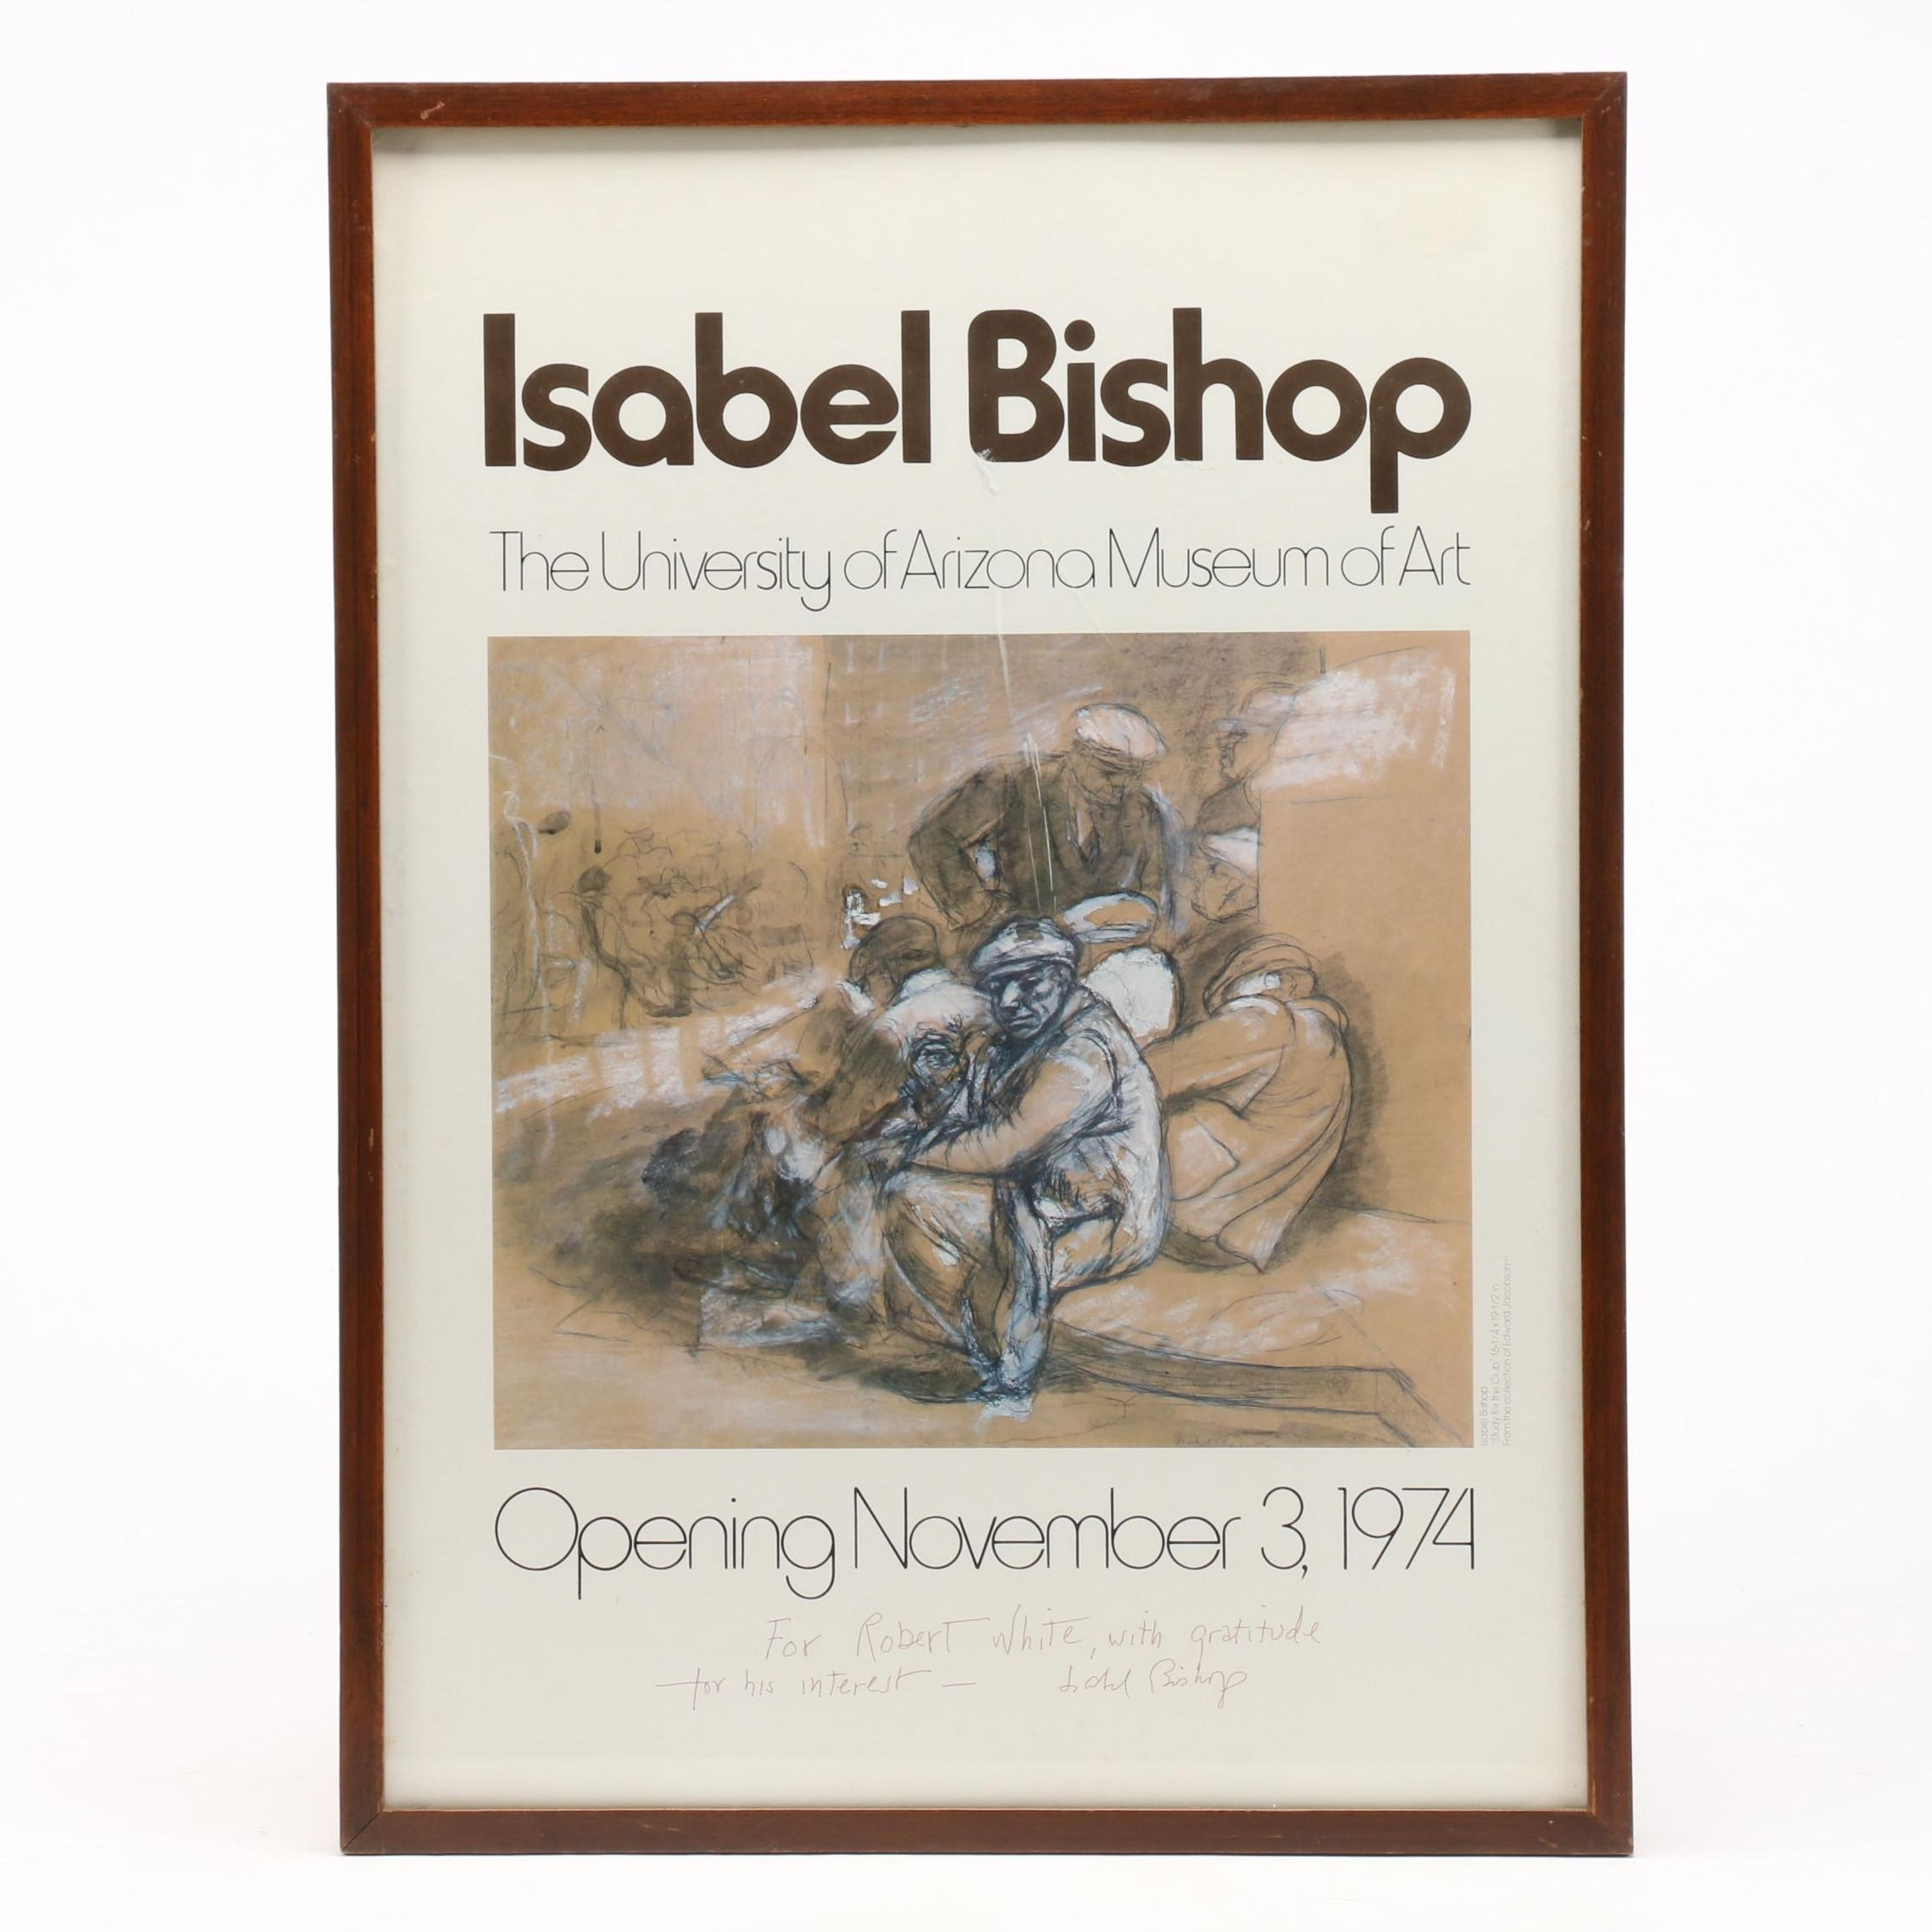 1974 Offset Lithograph Exhibition Poster after Isabel Bishop